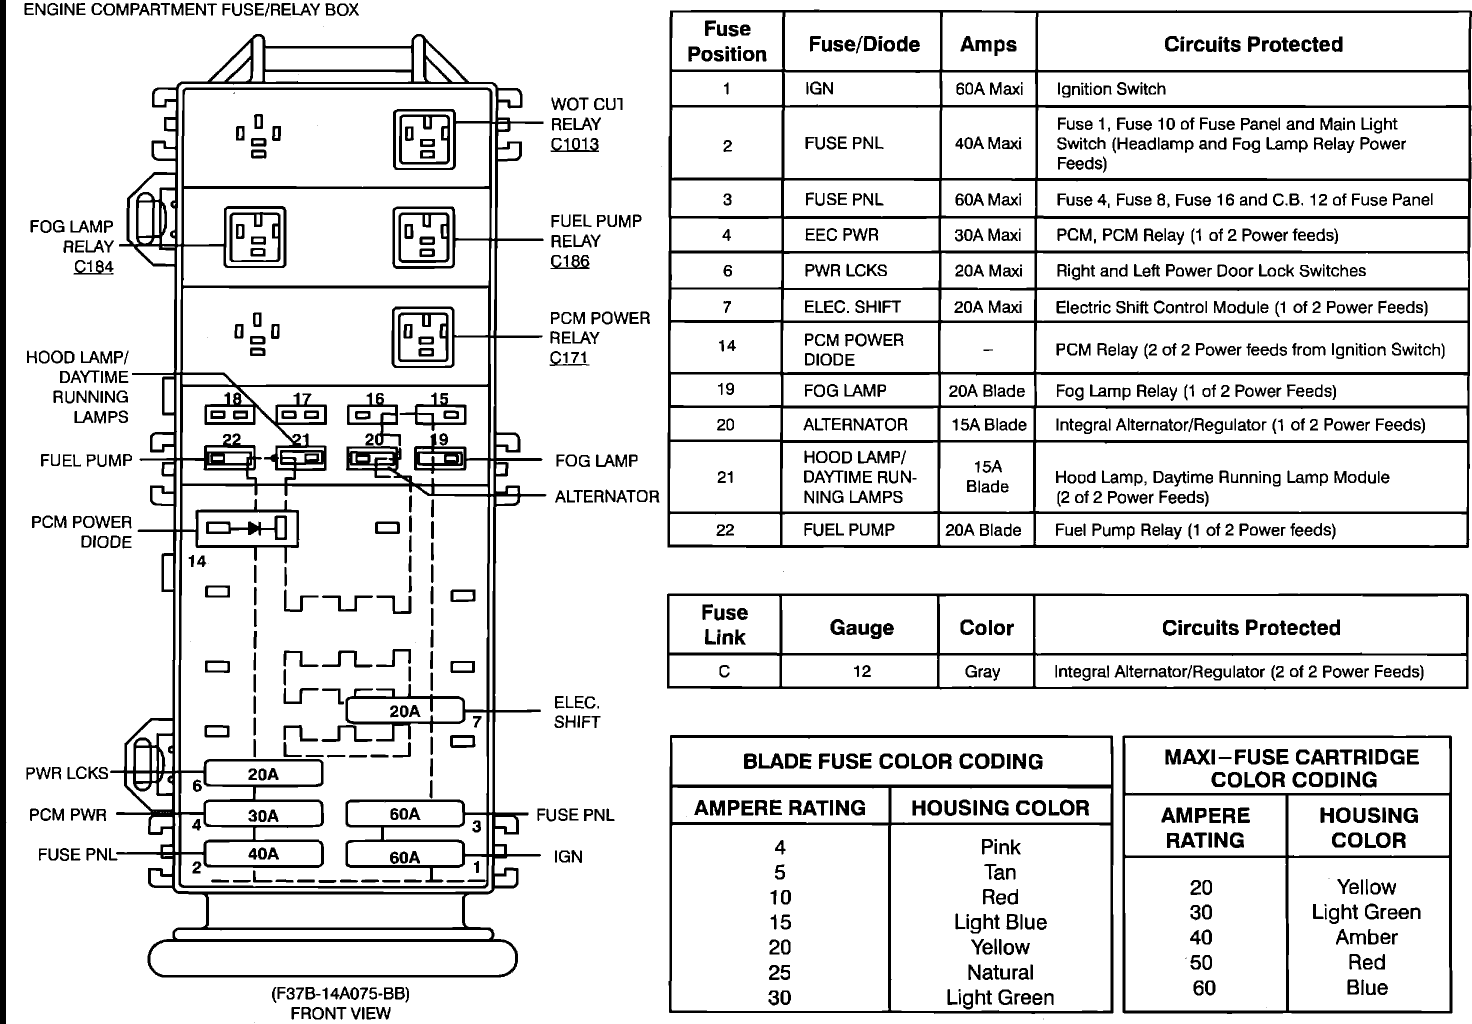 hight resolution of 94 ford explorer fuse box location wiring diagram third level1993 ford explorer 4x4 fuse panel diagram